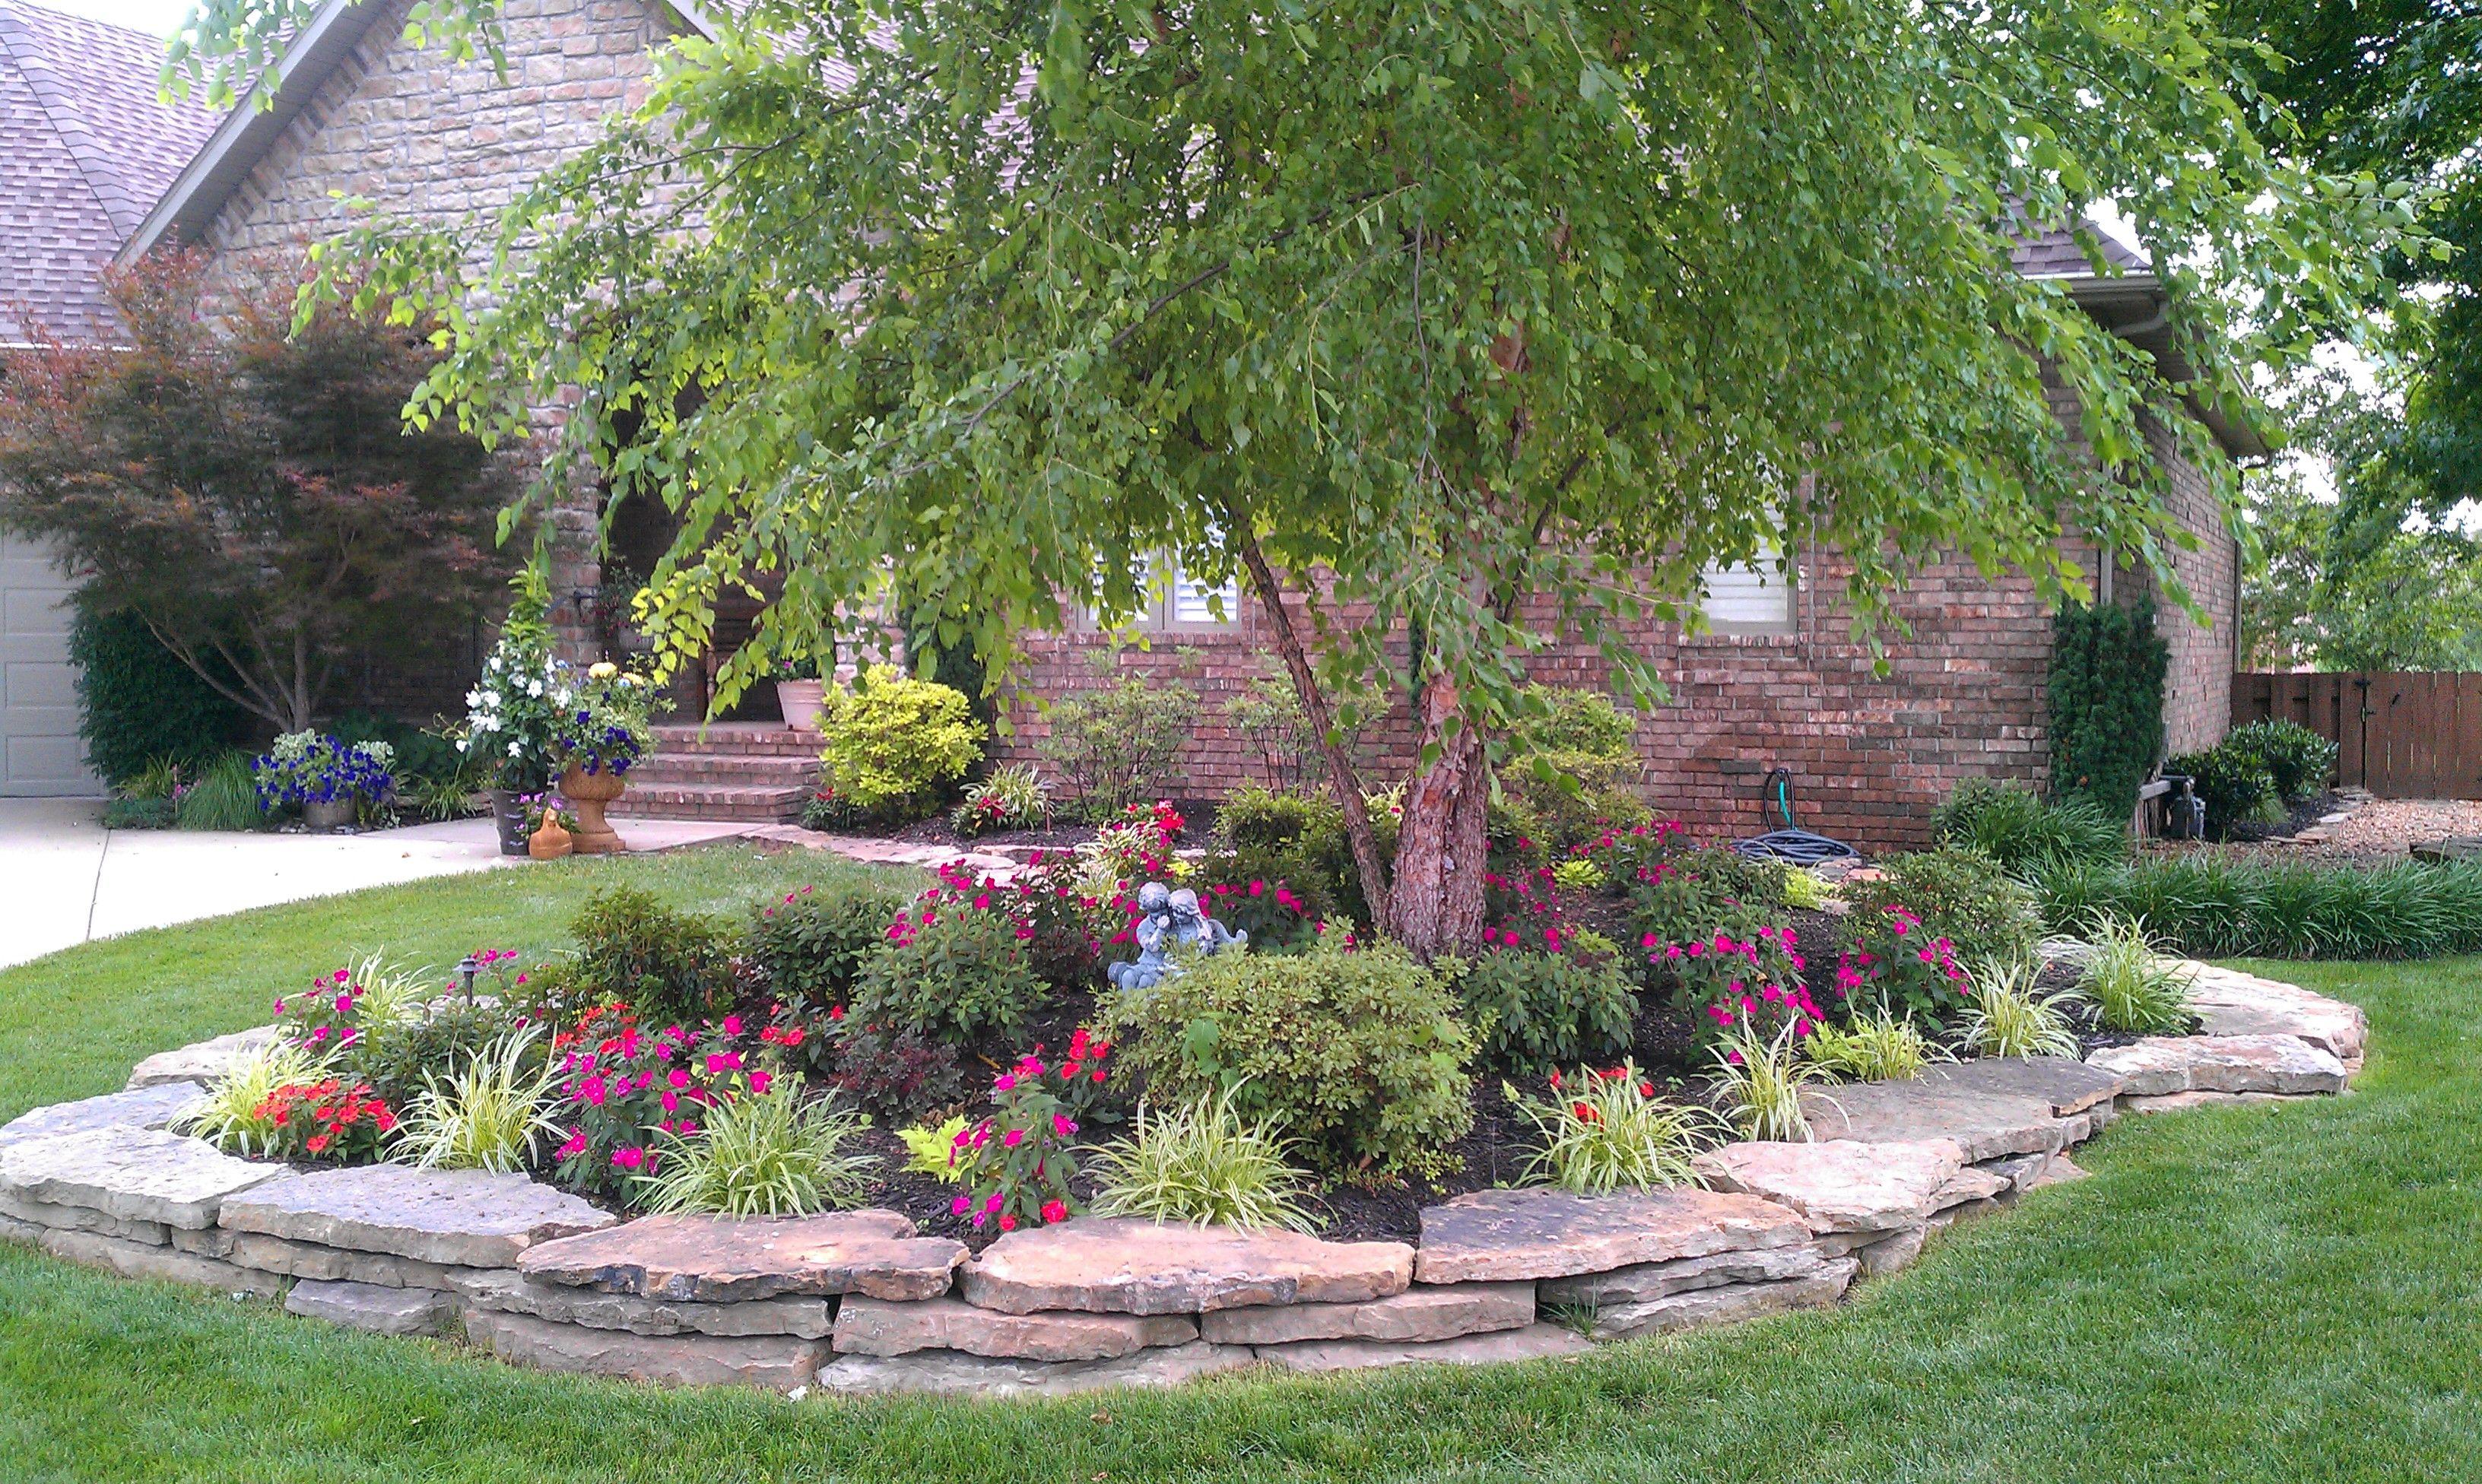 Landscaping Designs diy landscape design for beginners | landscape designs